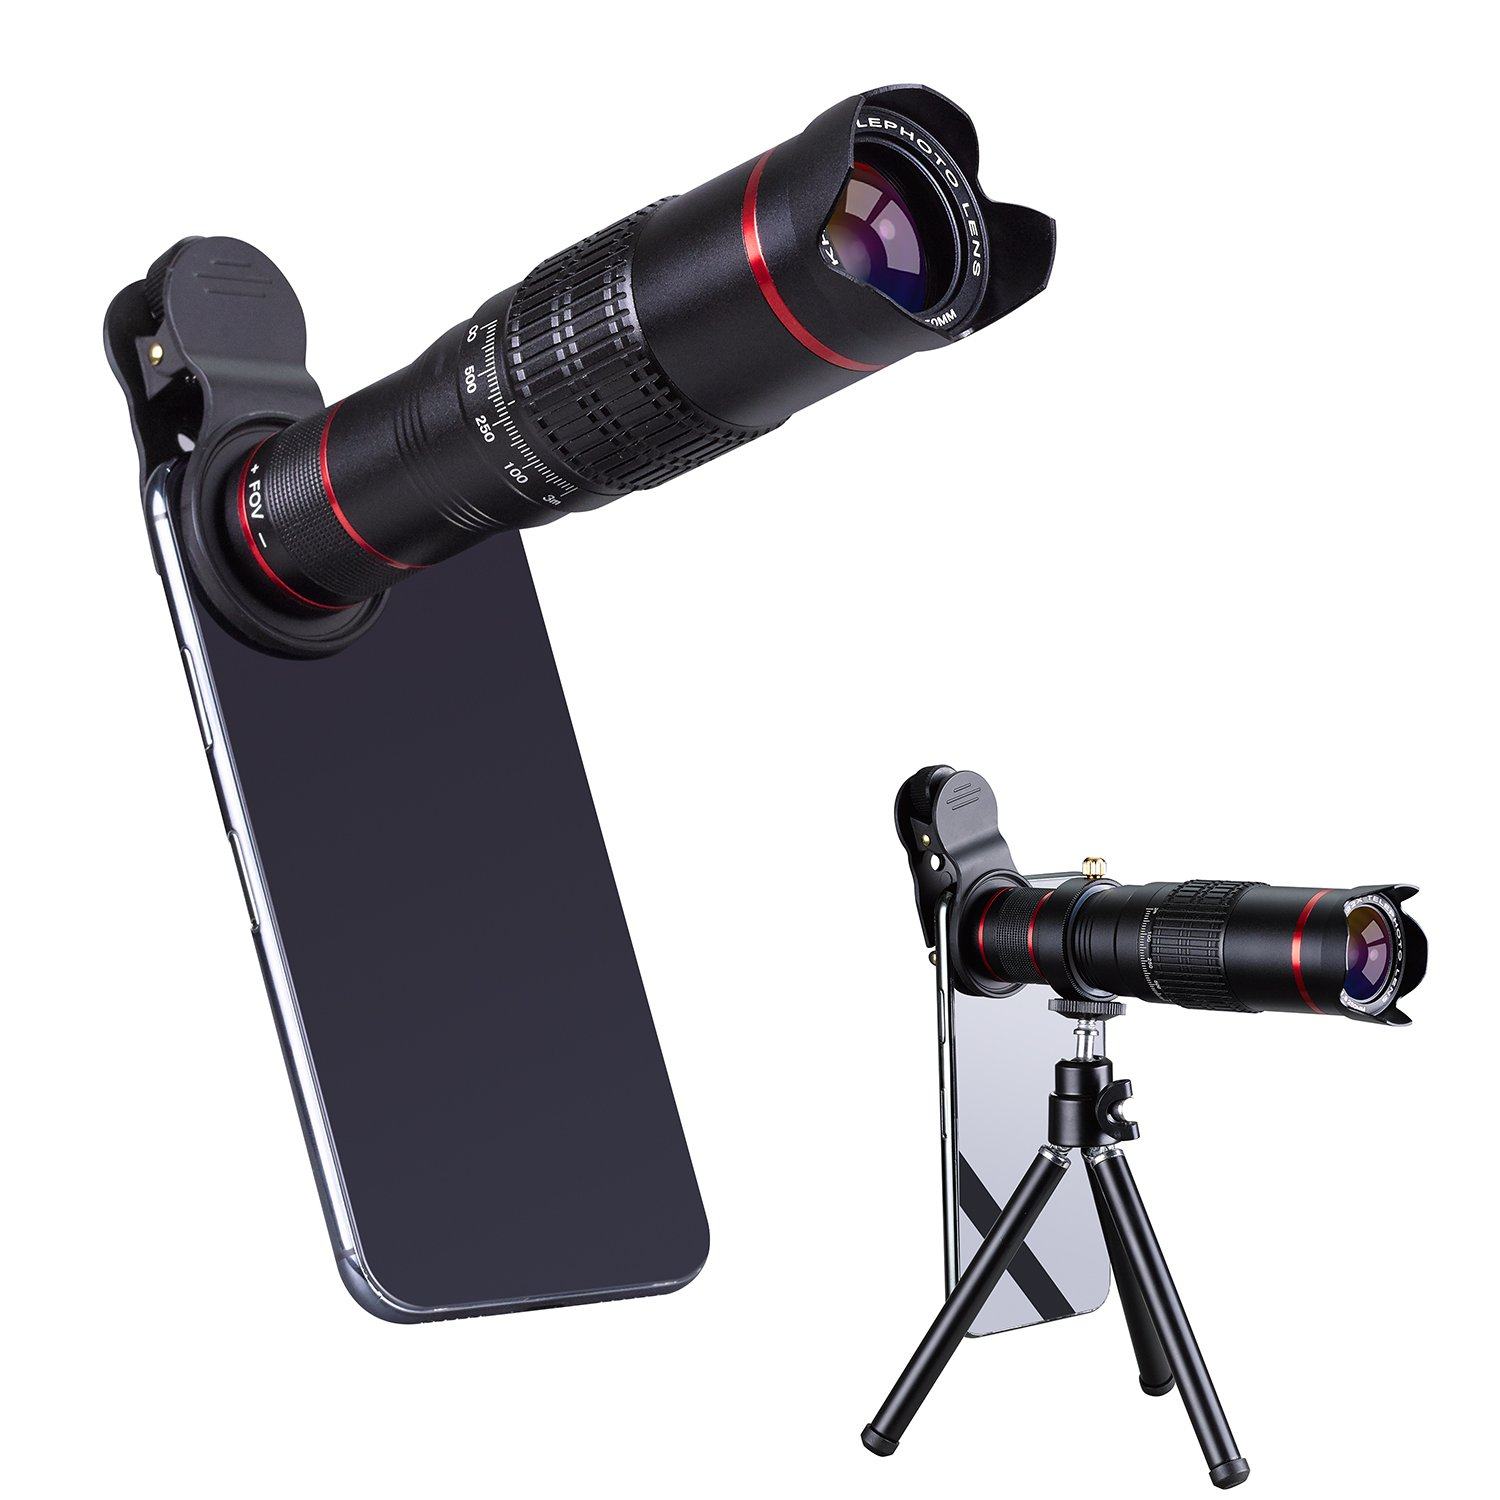 gifts for photographers under 50 dollars phone zoom lens